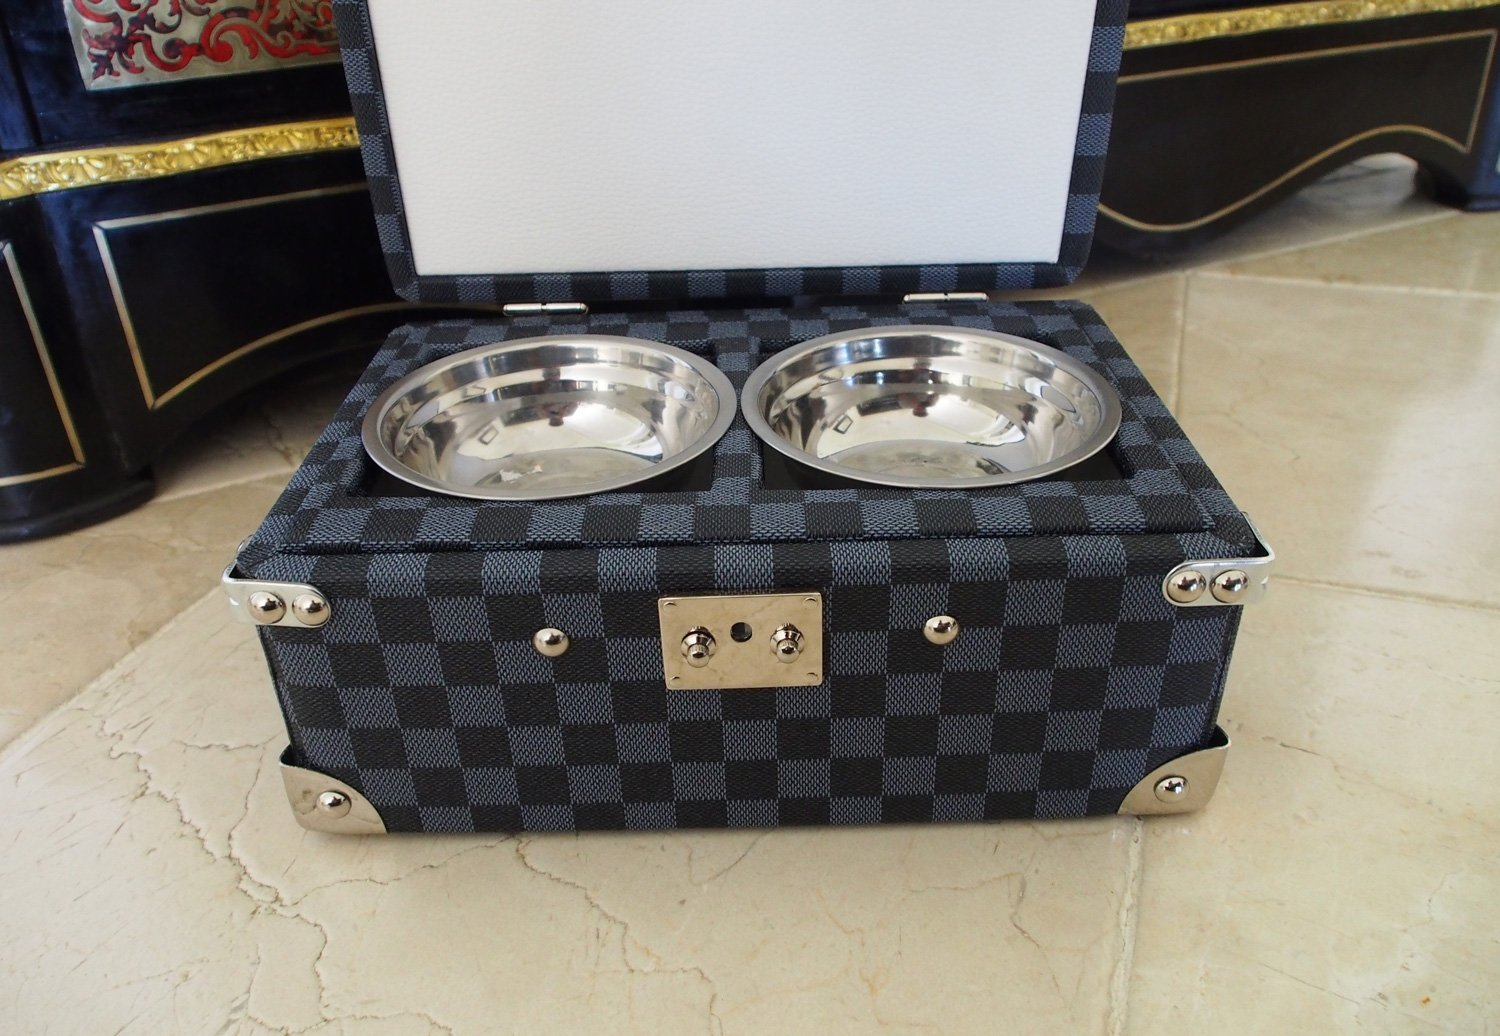 Dog travel bowls in wood covered chest